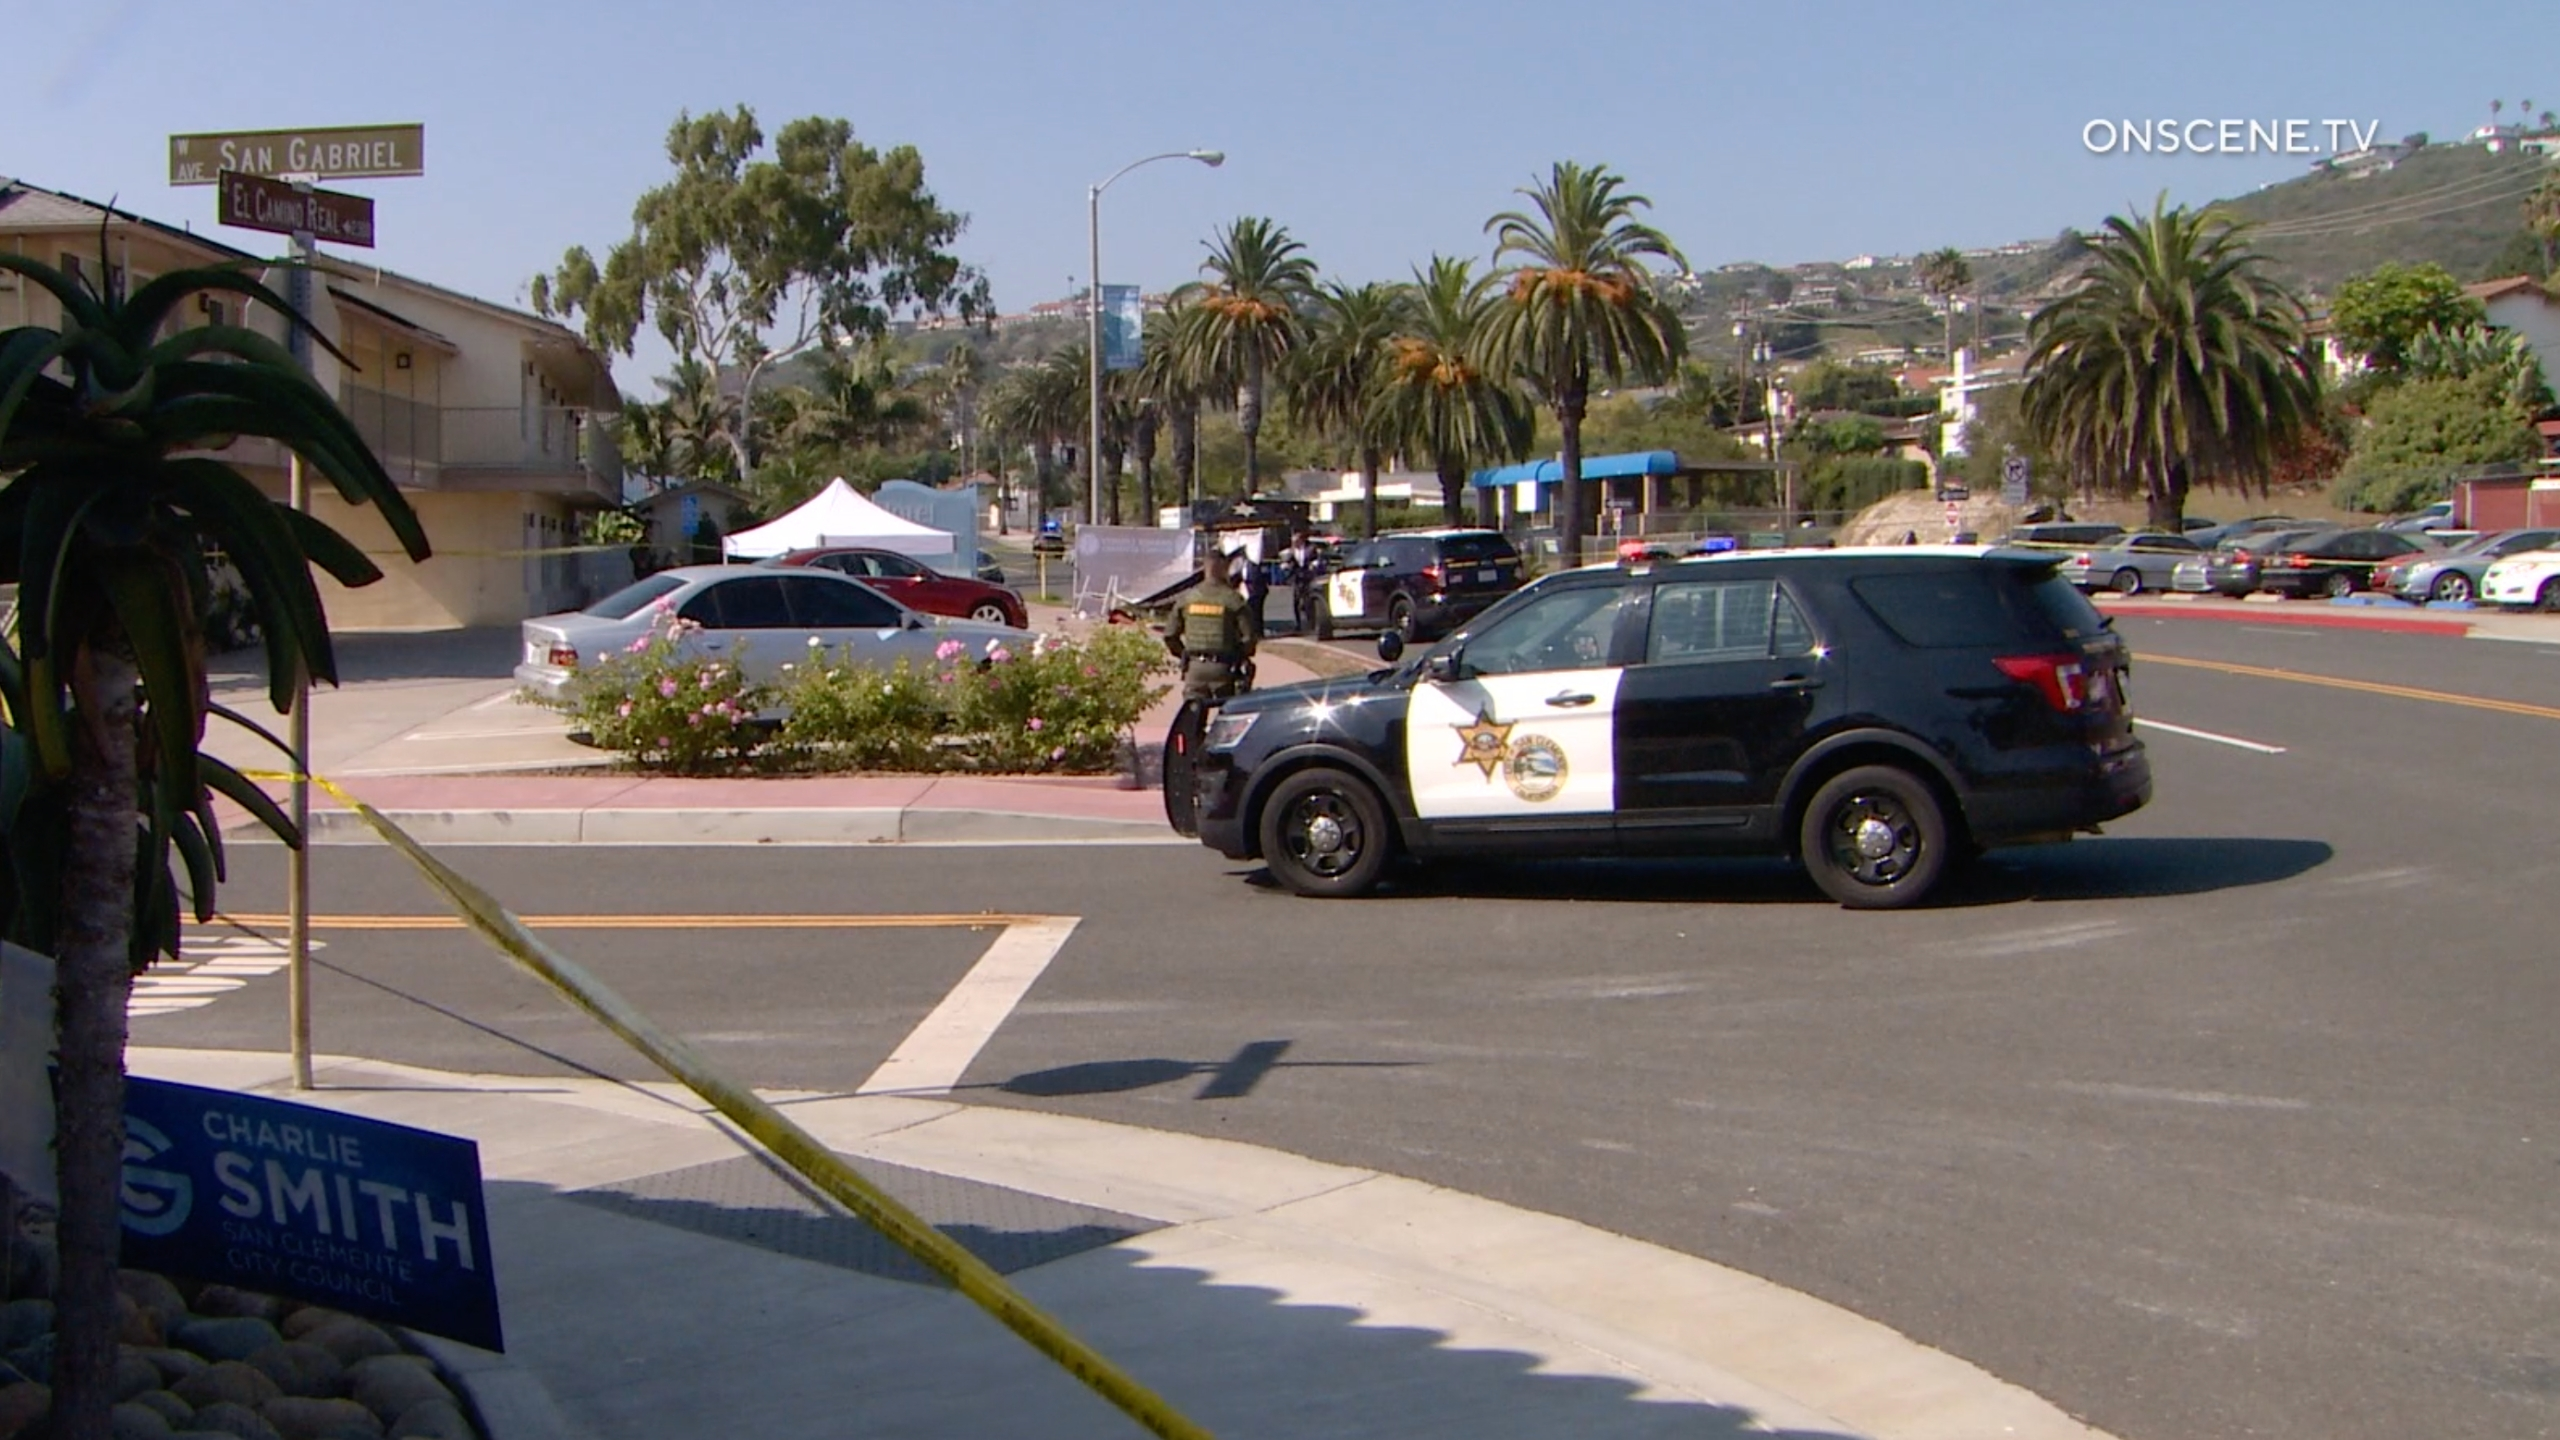 Authorities respond to investigate after deputies fatally shot a man outside a San Clemente hotel on Sept. 23, 2020. (OnScene.TV)